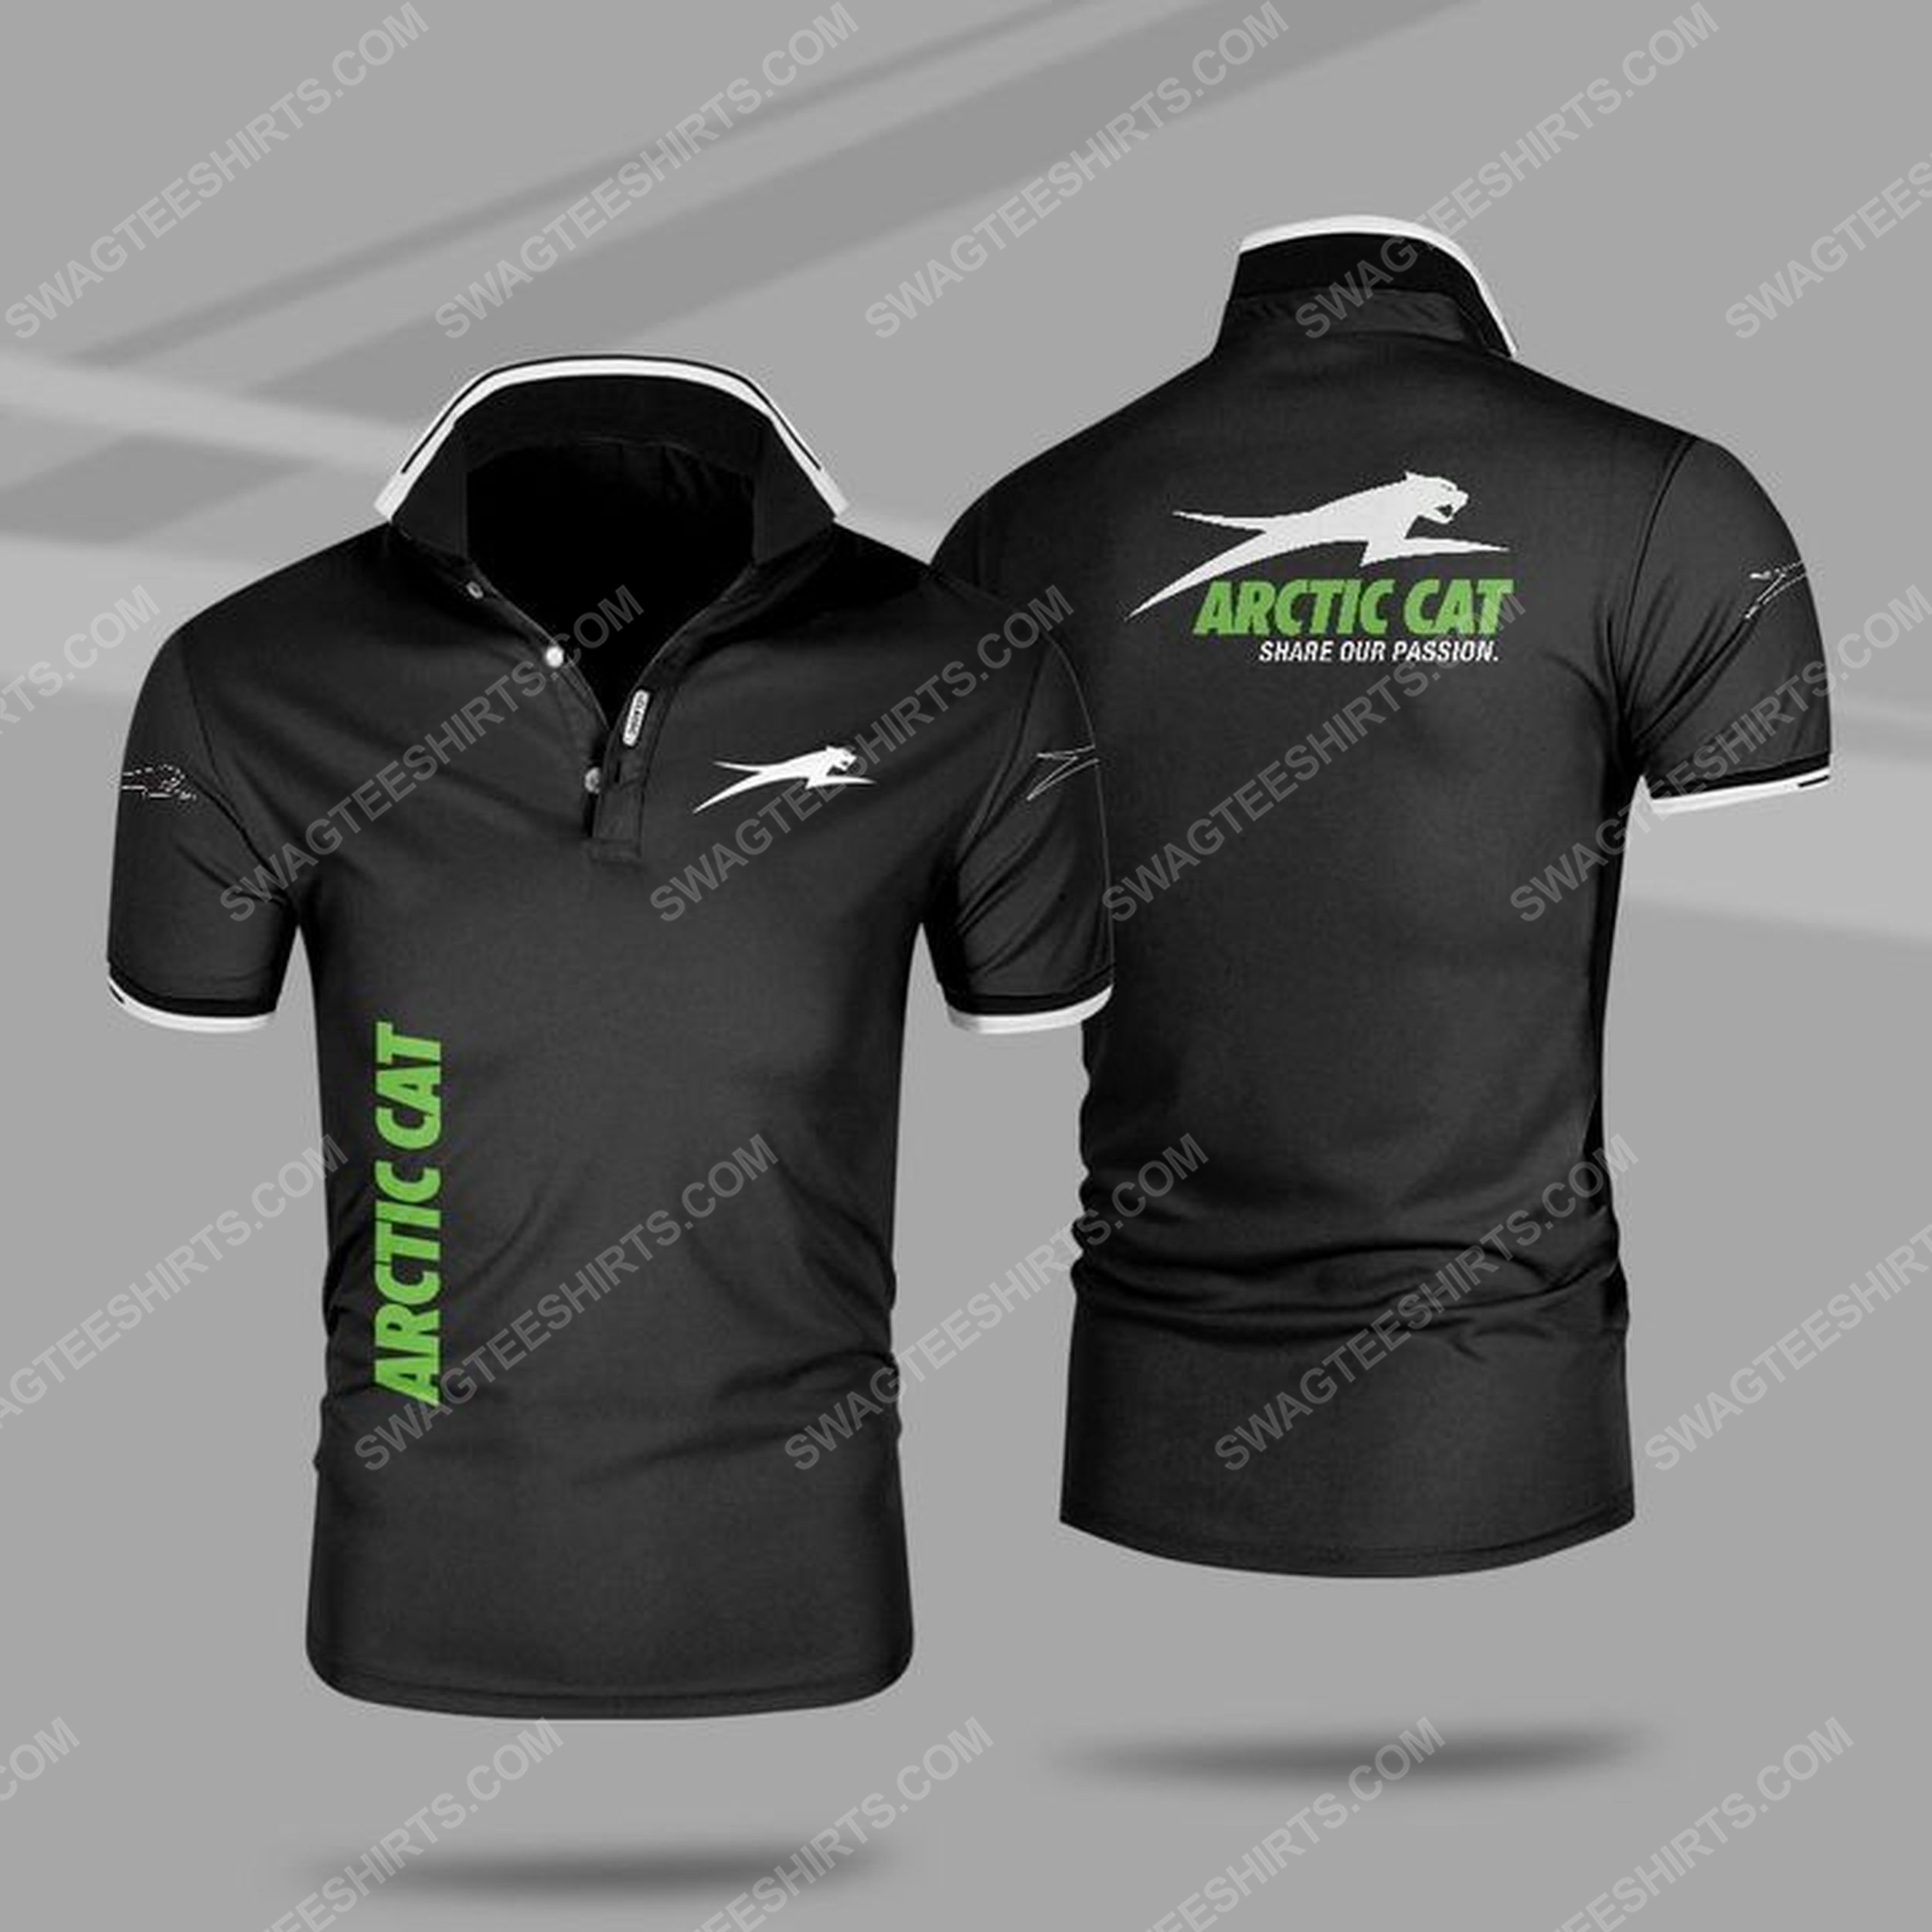 Arctic cat share our passion all over print polo shirt - black 1